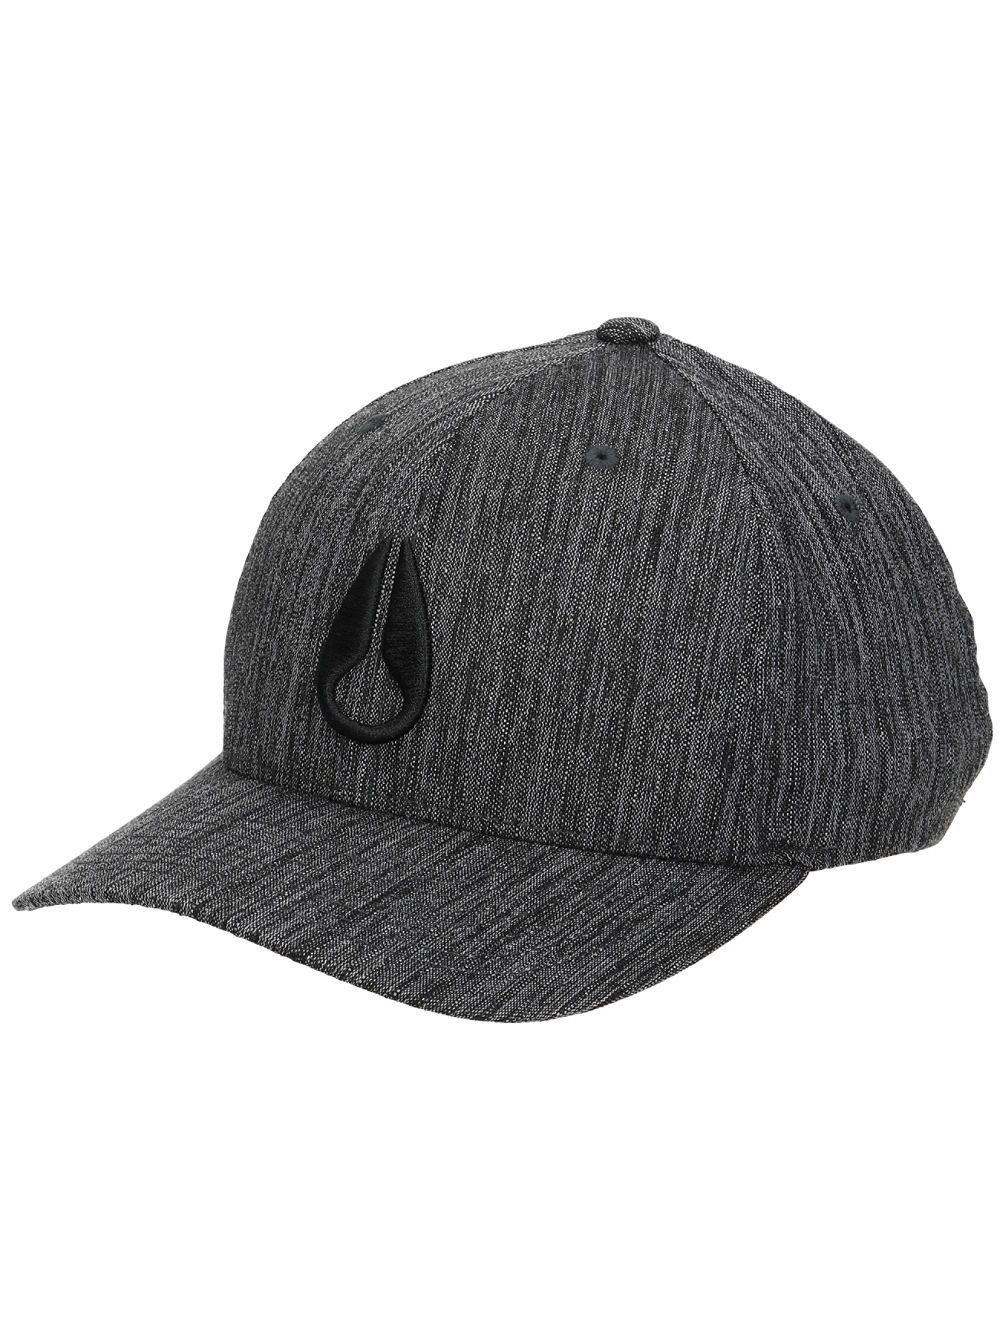 Deep Down Athletic Textured Cap